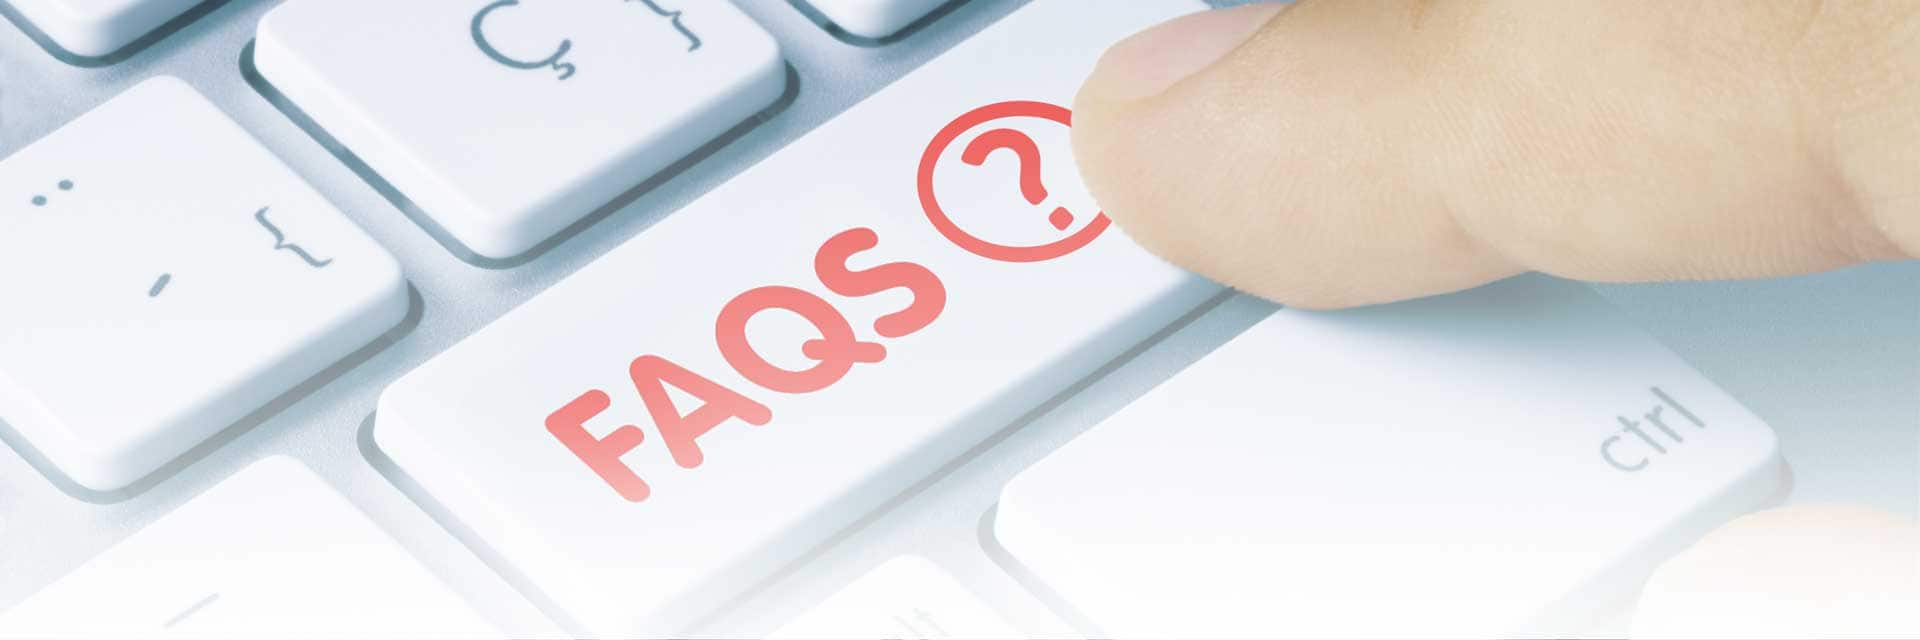 Banner Image; computer keyboard with a red button that reads 'FAQs'